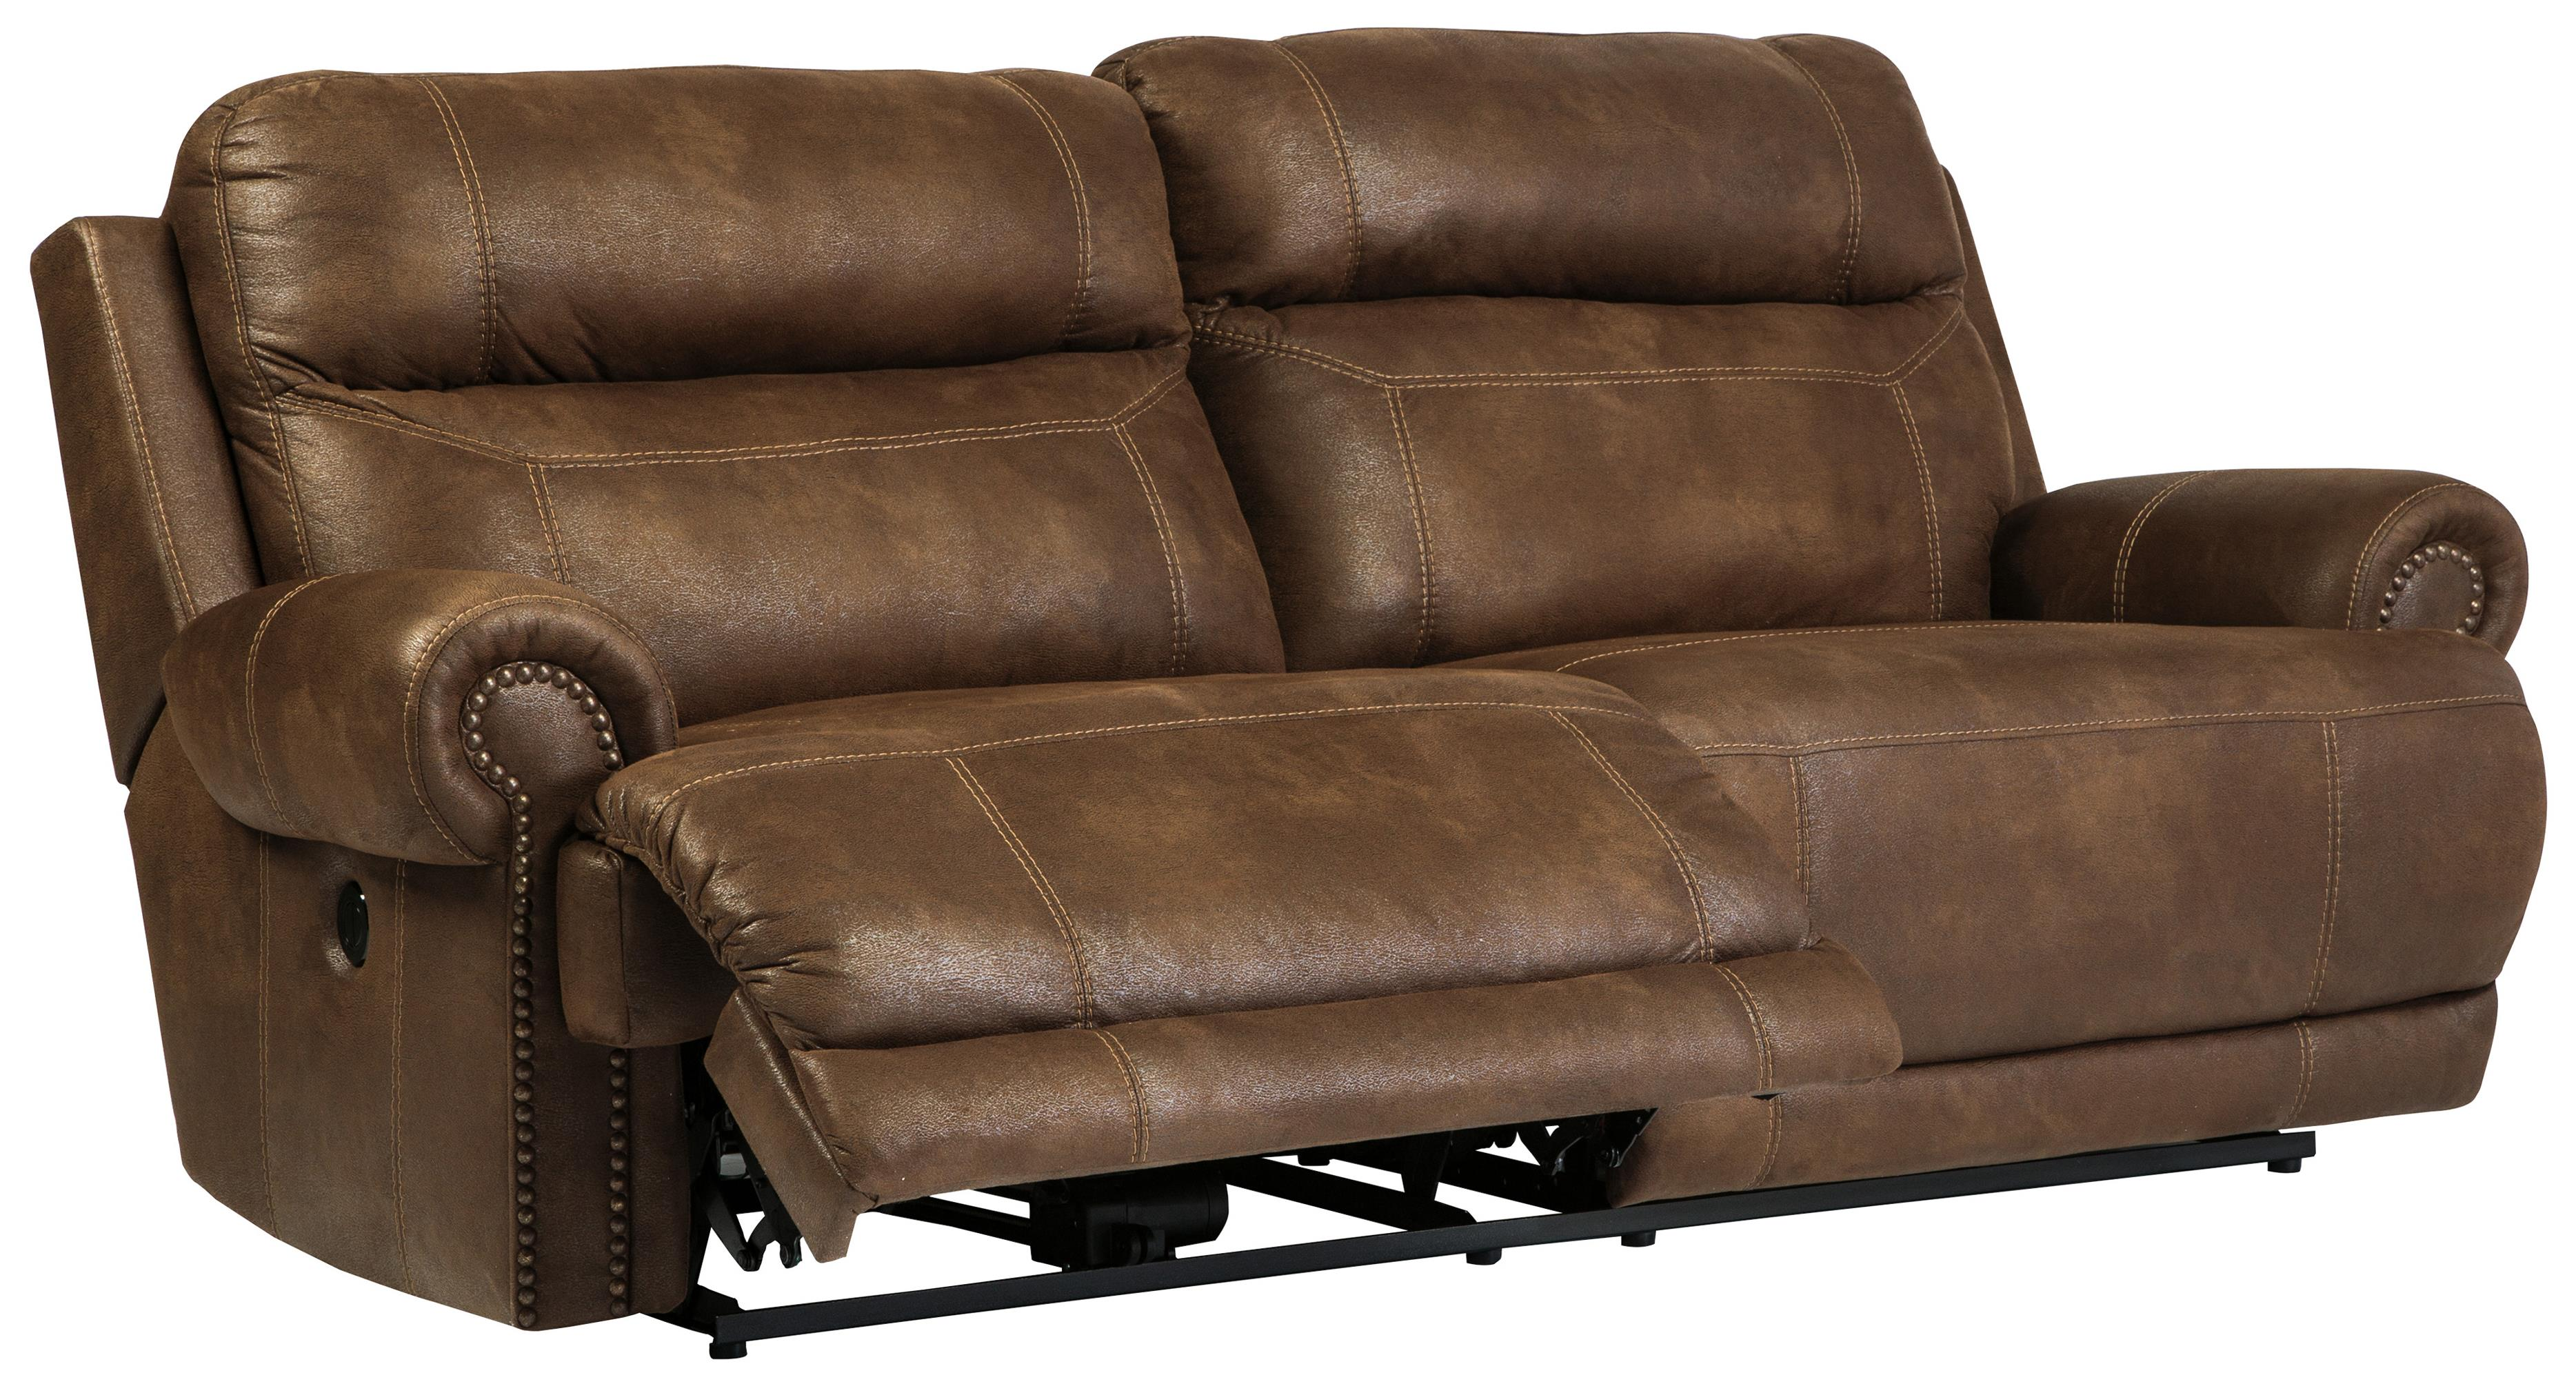 Corsetta 2 Seater Recliner Sofa 2 Seat Reclining Sofa With Rolled Arms And Nailhead Trim